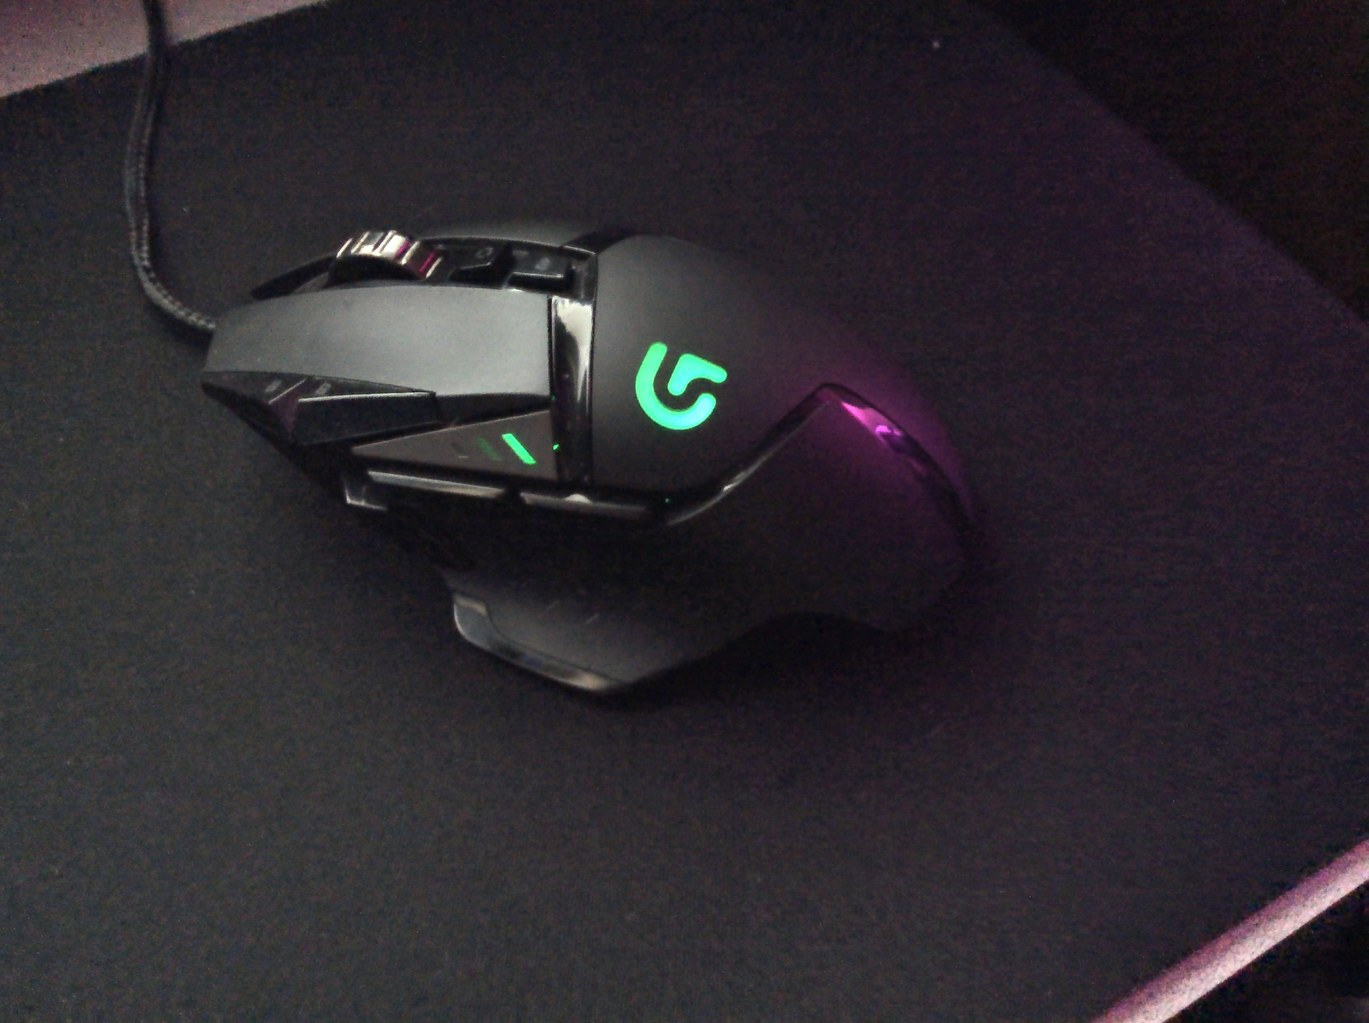 8cc0ec031c8 G502 Too Heavy For Gaming? - Peripherals - Linus Tech Tips